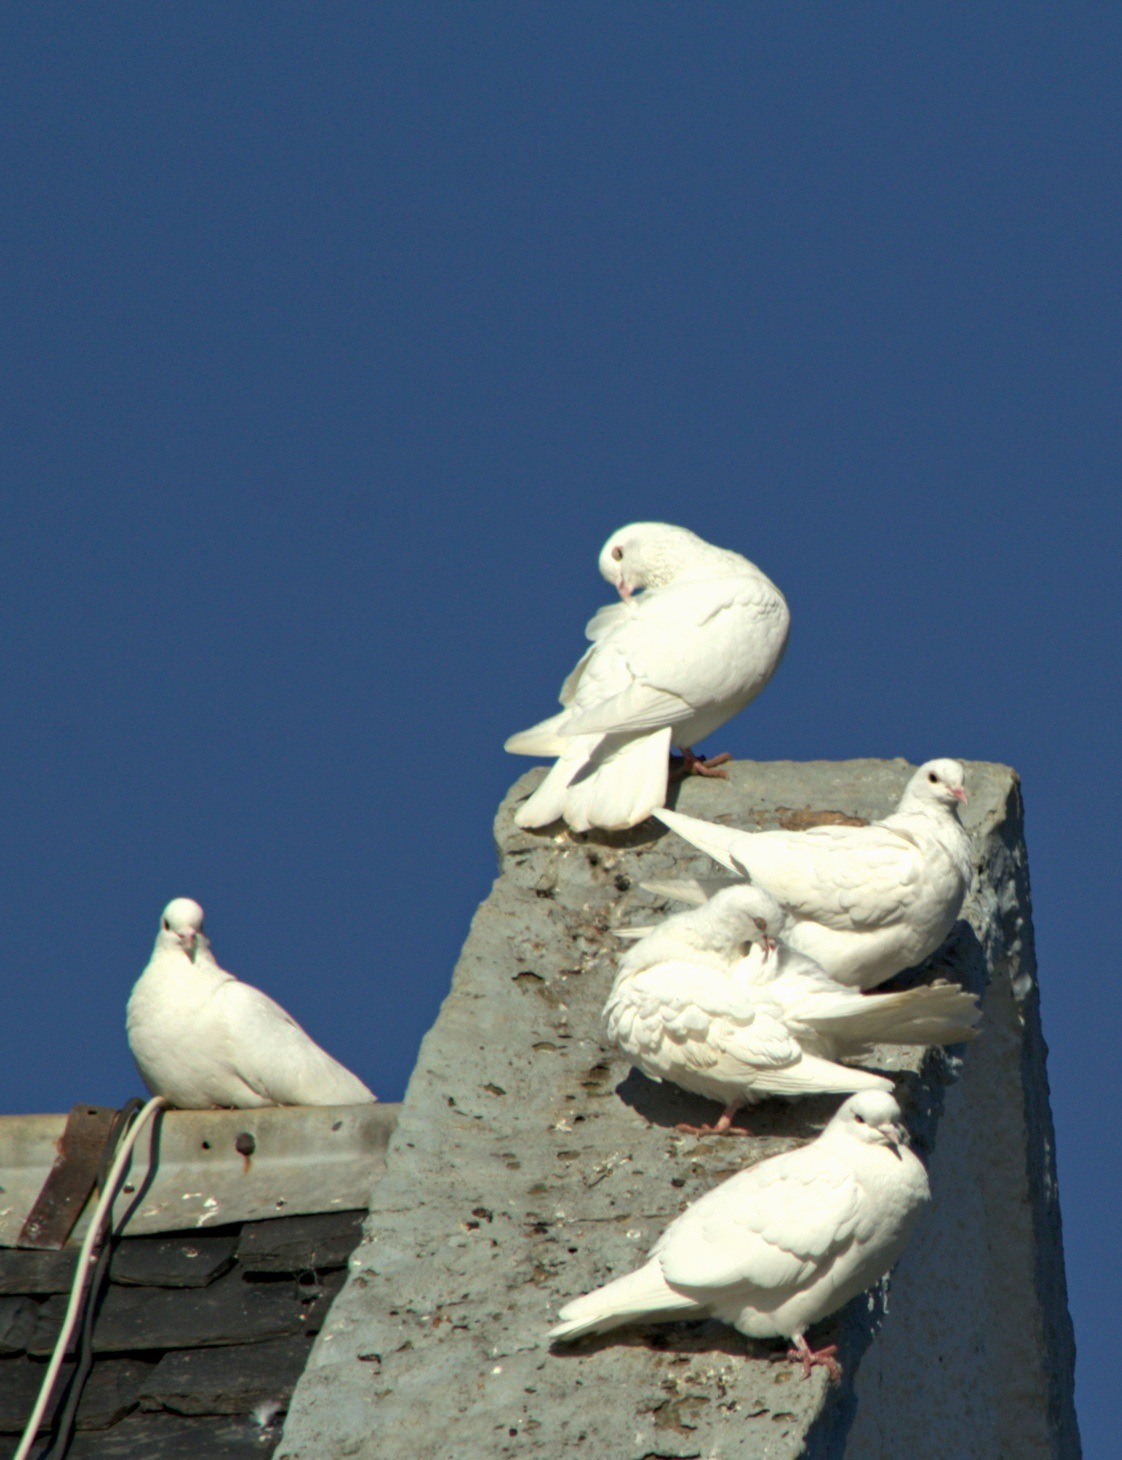 Doves by Rich66